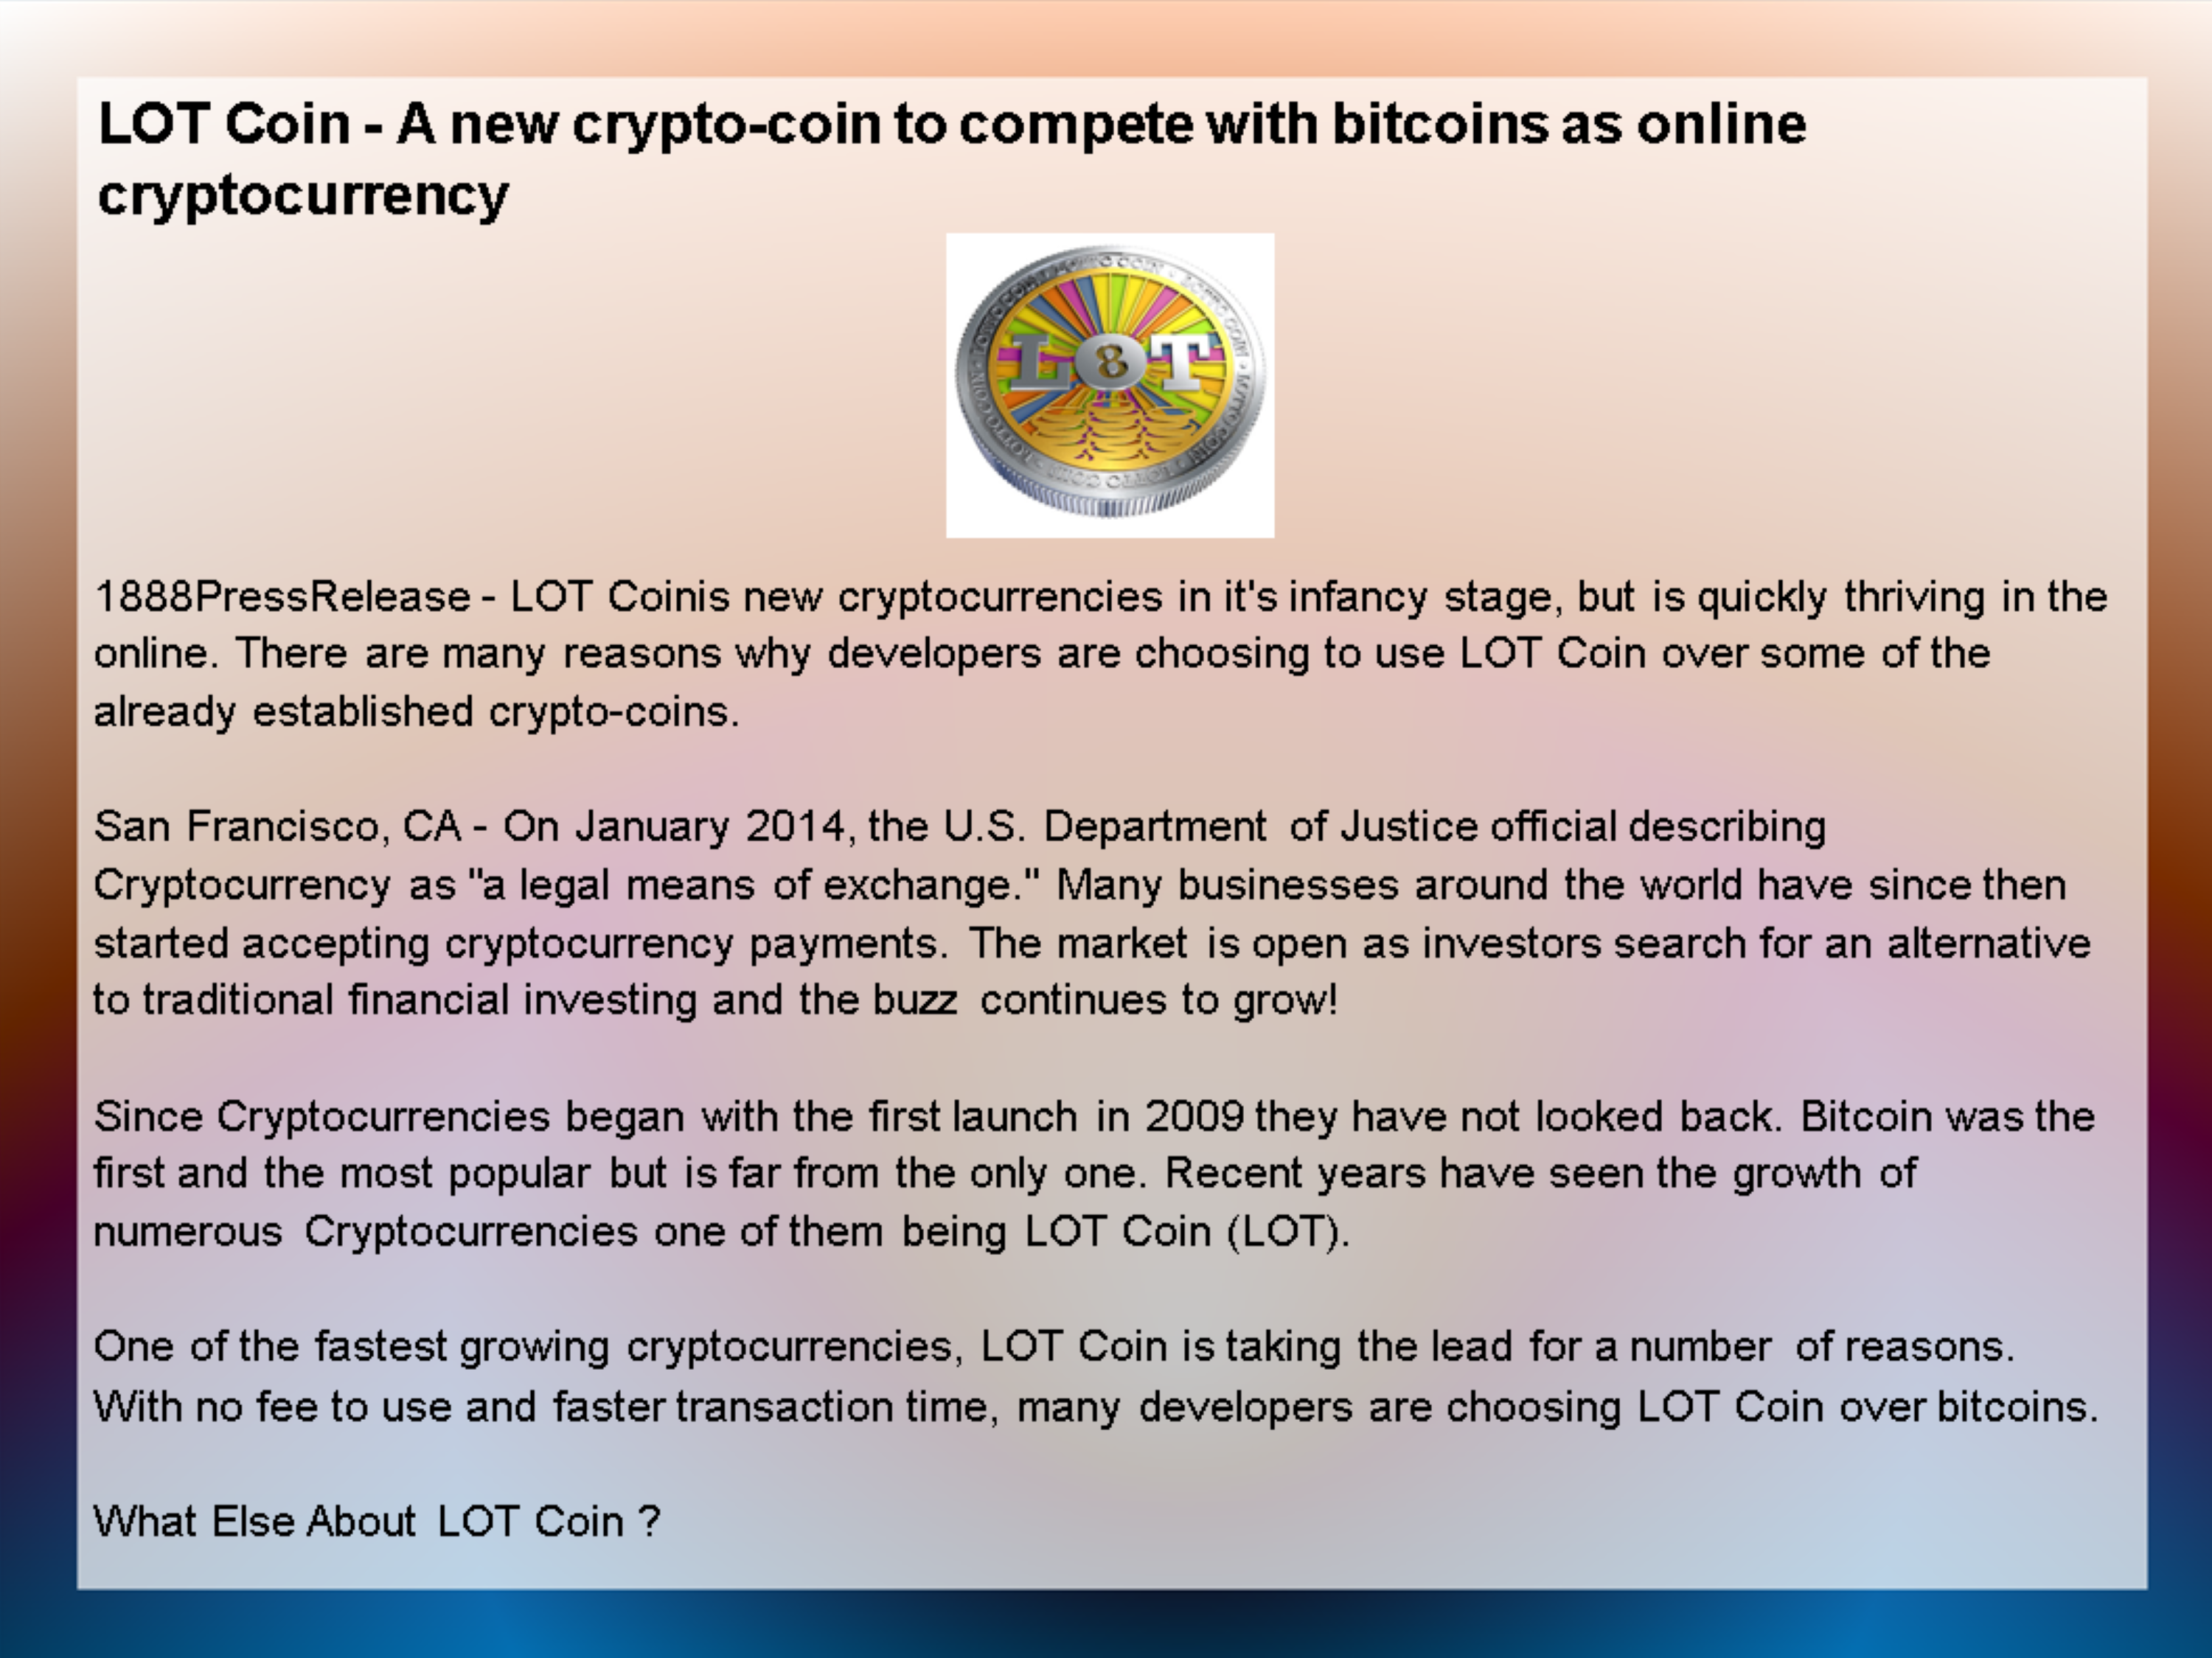 LOT Coin - A new crypto-coin to compete with bitcoins as online cryptocurrency